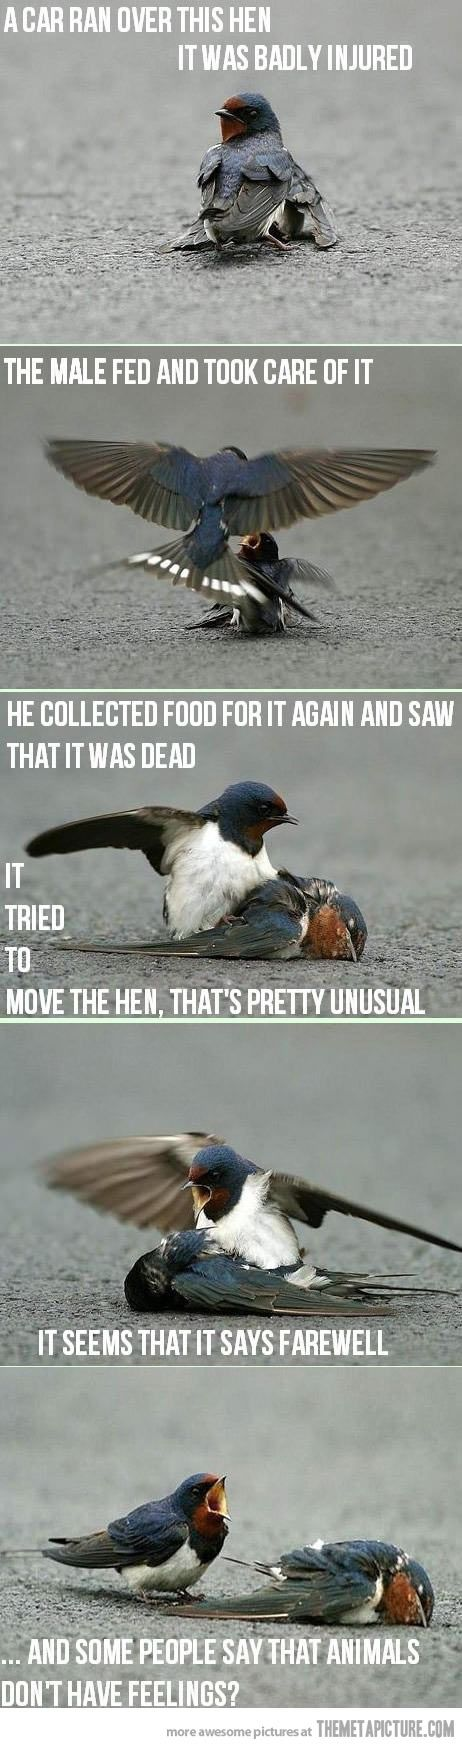 Ad hope the death of a bird